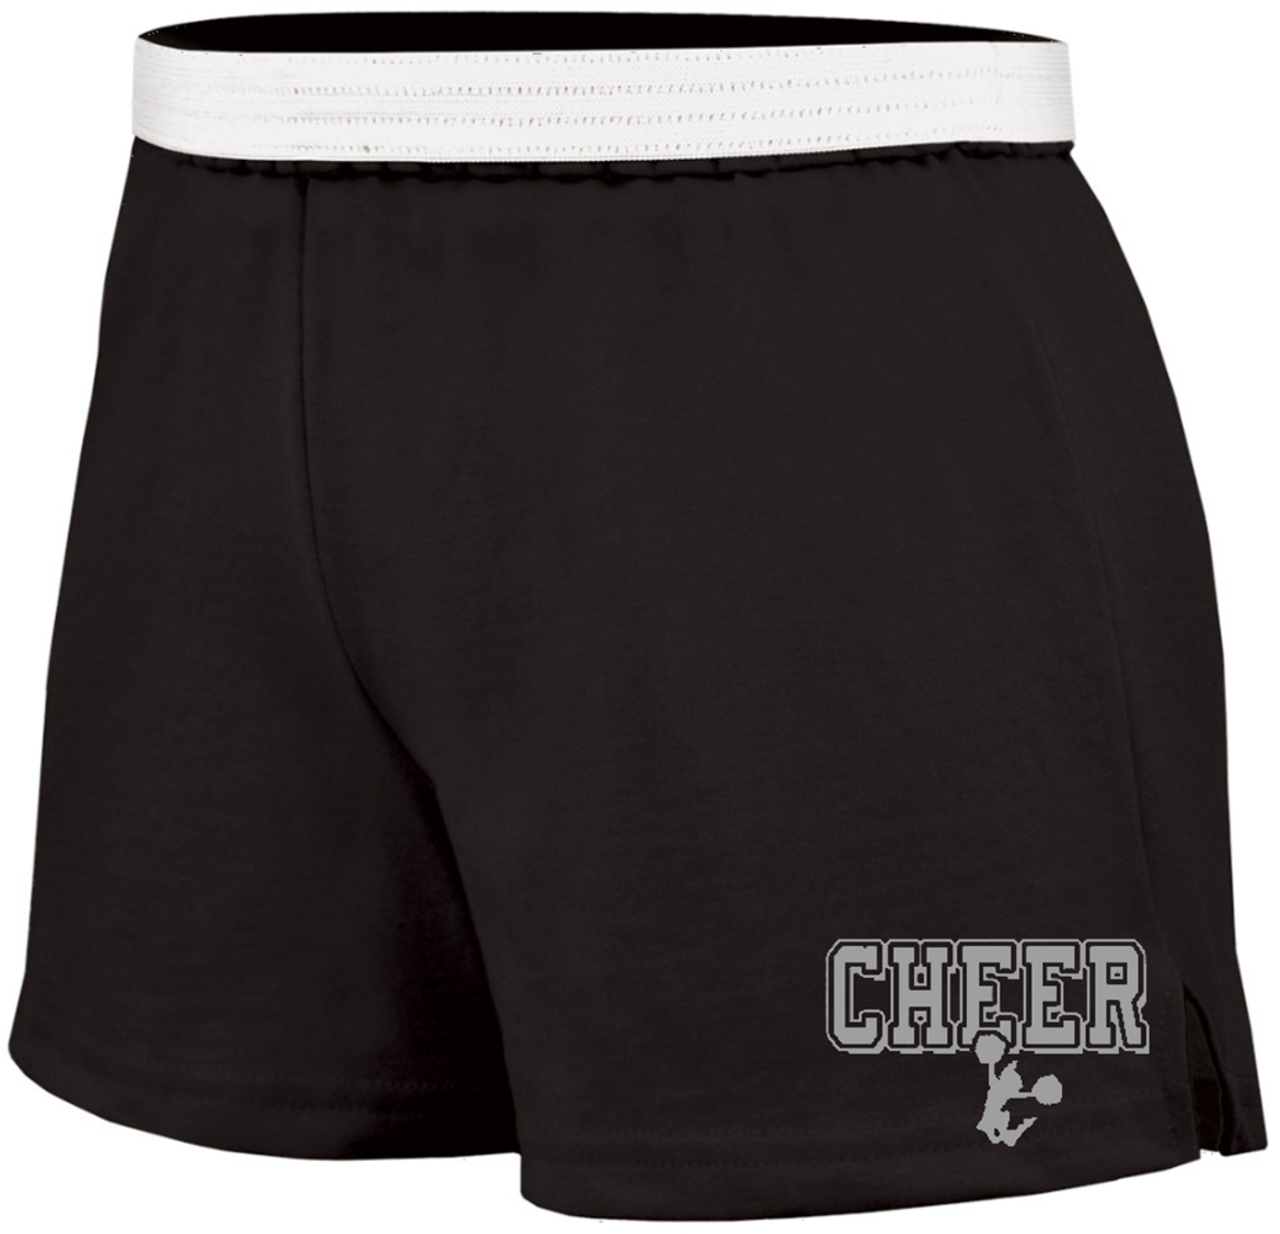 5d27091058e66 Cheer Soffe Short with Silver Logo - JANT girl